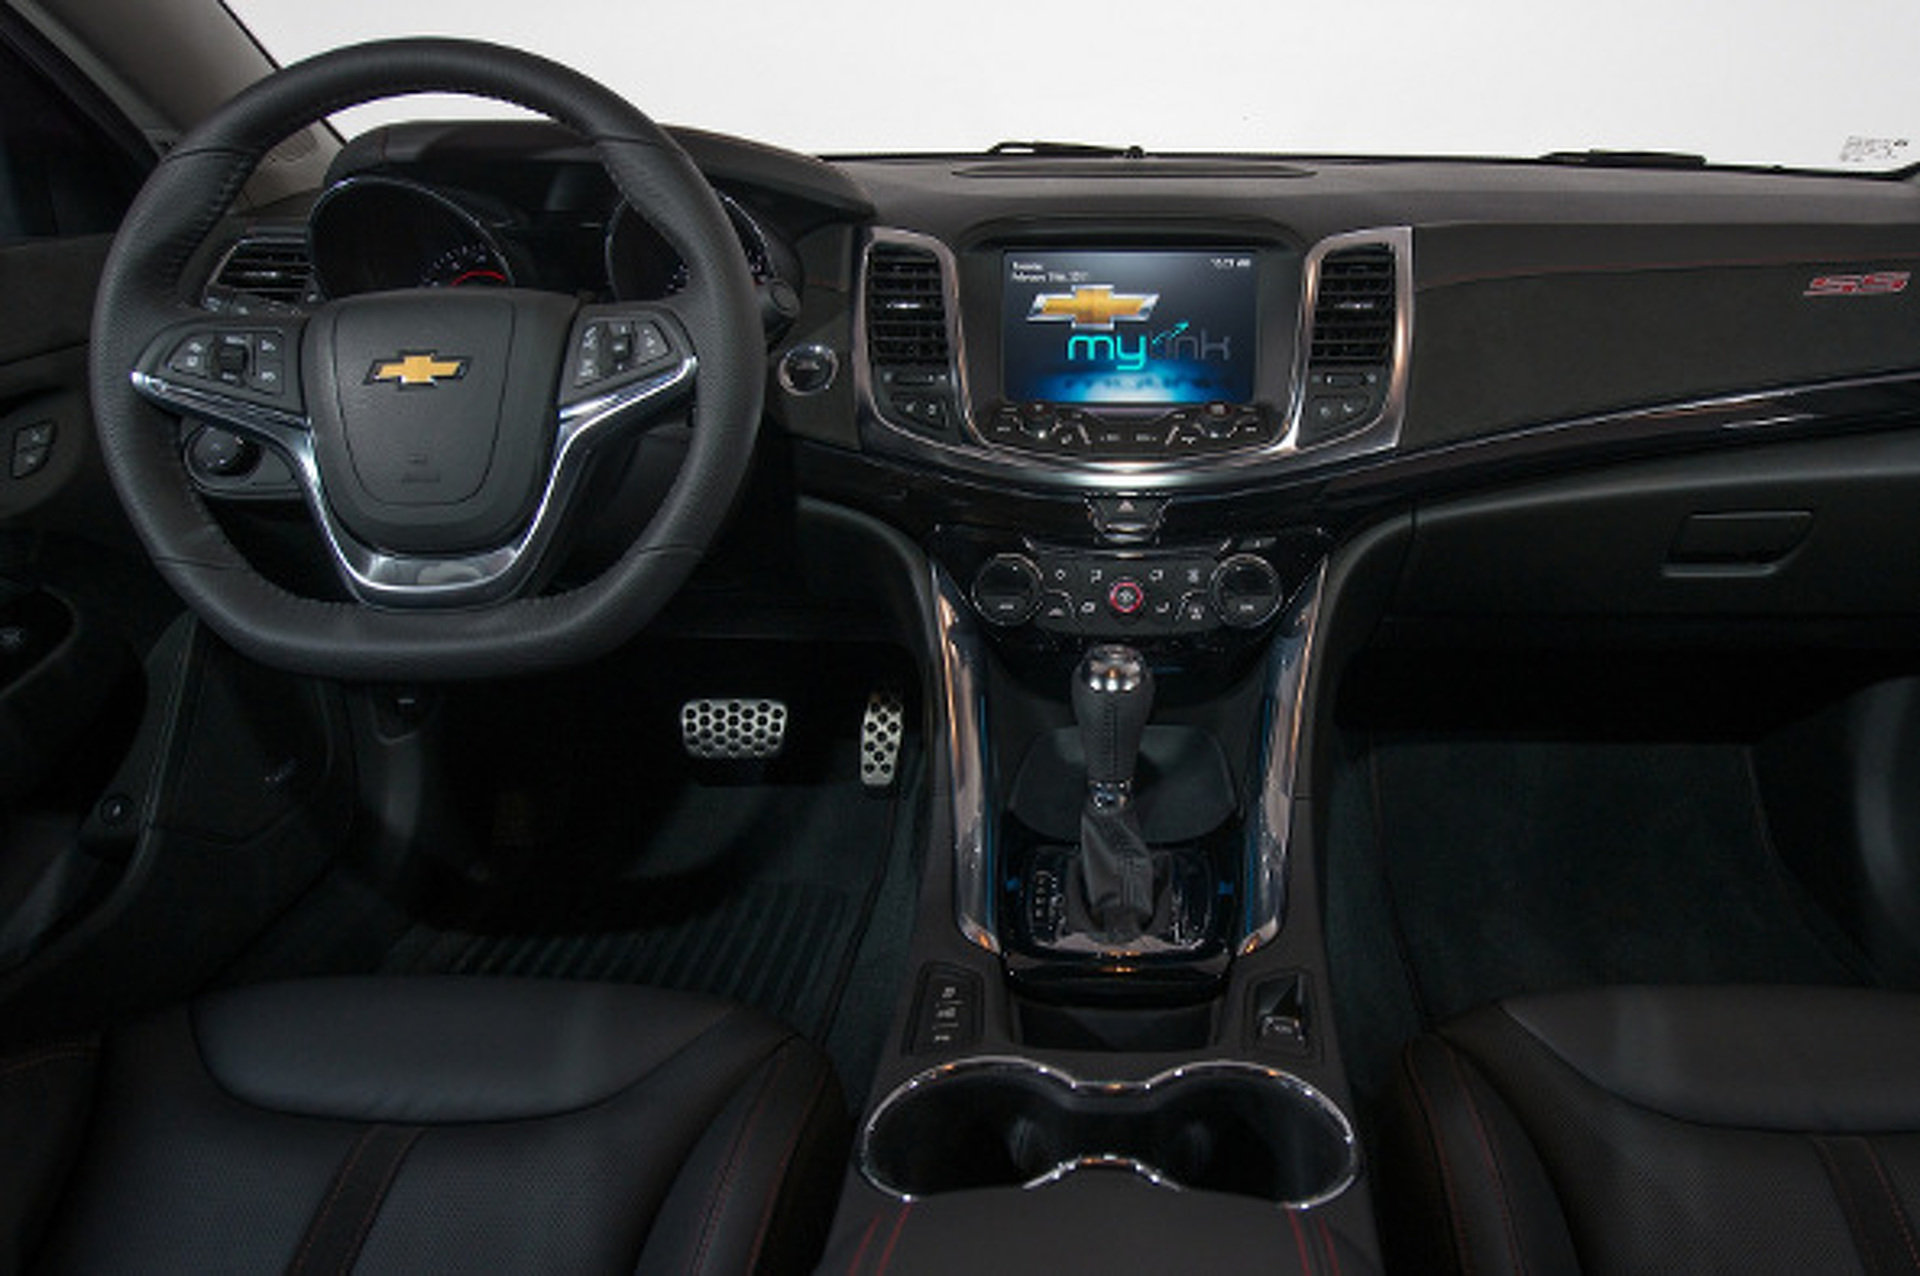 2014 Chevrolet SS is the Pontiac G8, Only Better